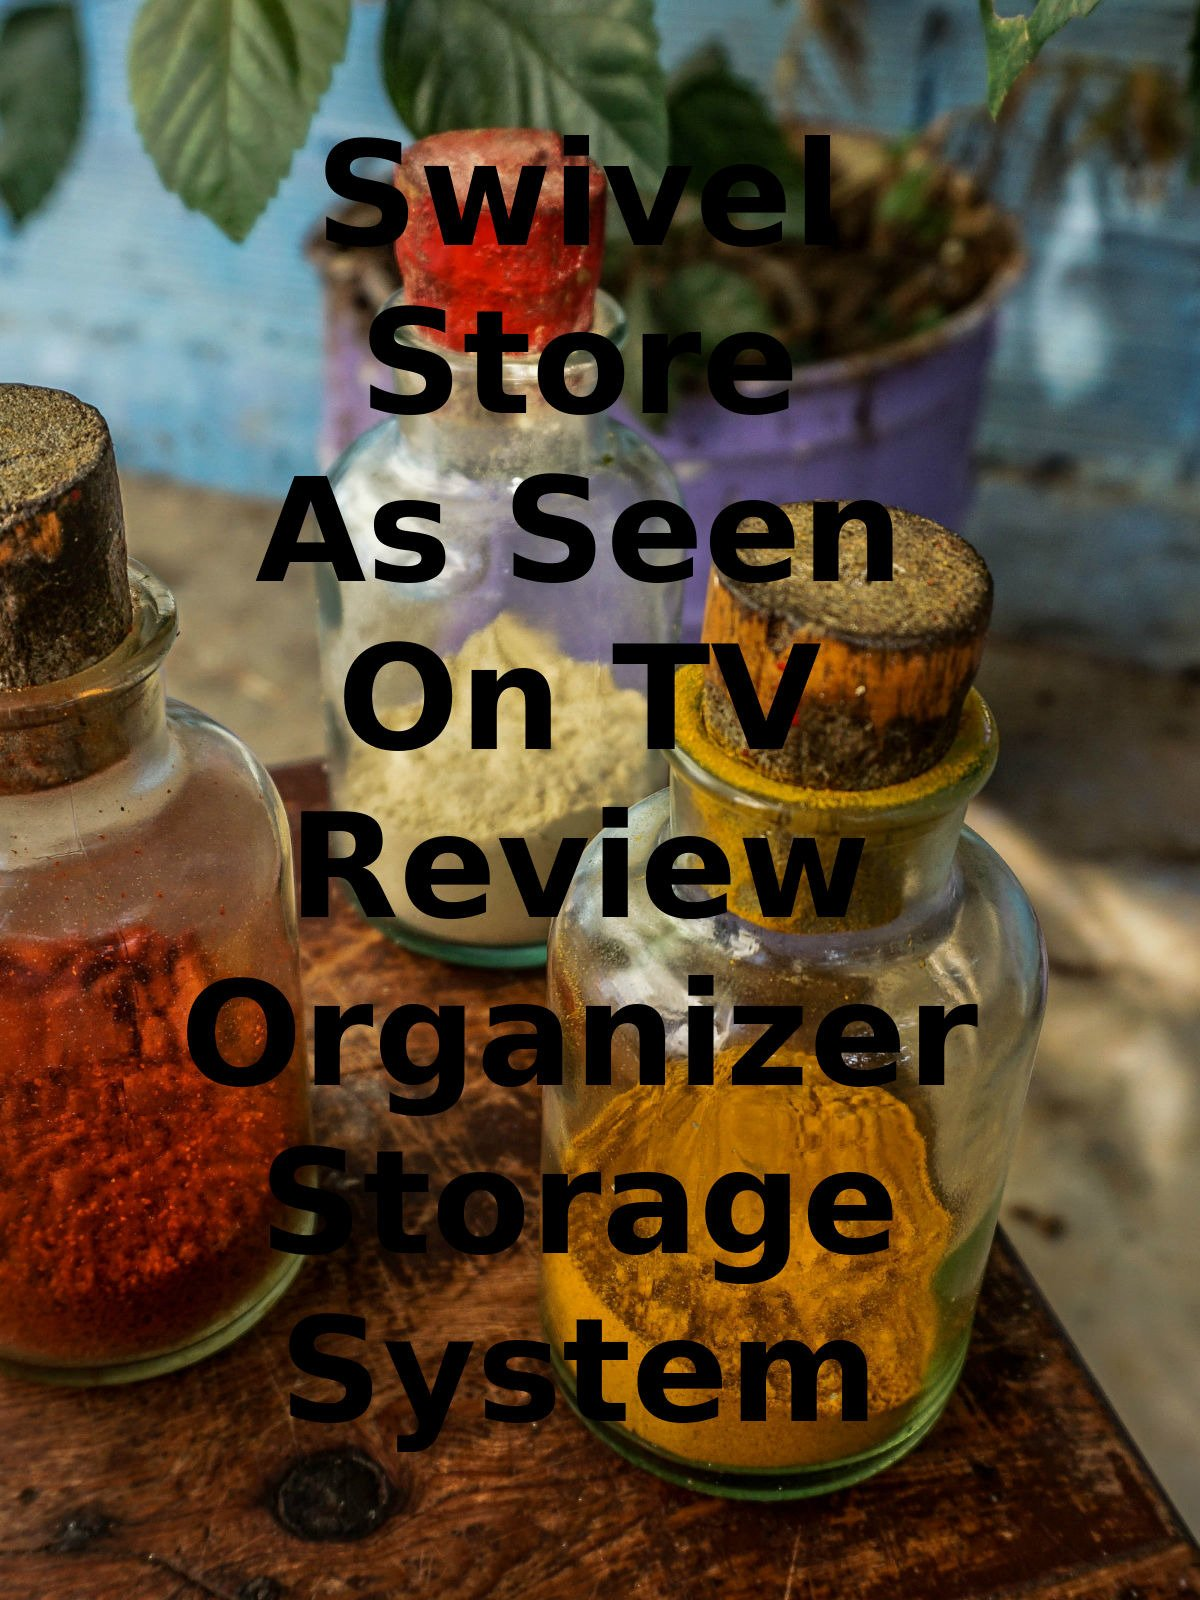 Review: Swivel Store As Seen On TV Review Organizer Storage System on Amazon Prime Video UK